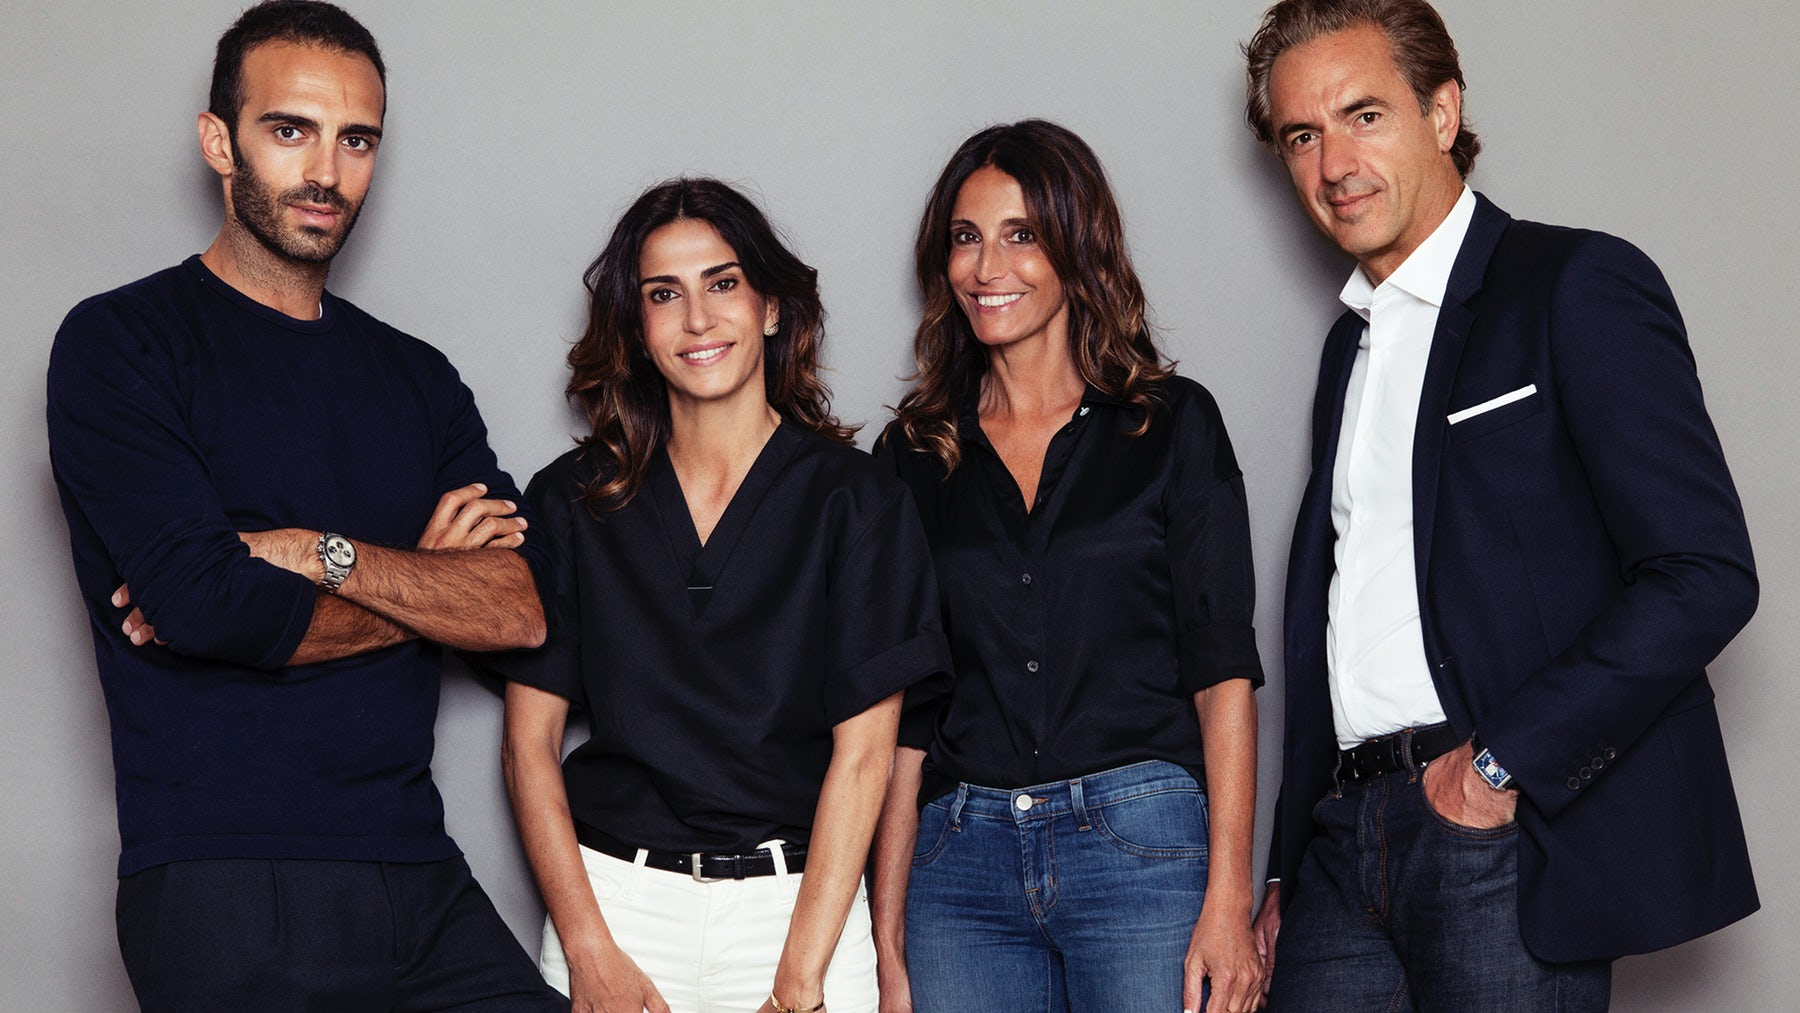 Ilan Chetrite, Founder of Sandro menswear, Judith Milgrom, Founder of Maje, Evelyne Chetrite, Founder of Sandro and Daniel Lalonde, SMCP Chief Executive | Source: Courtesy